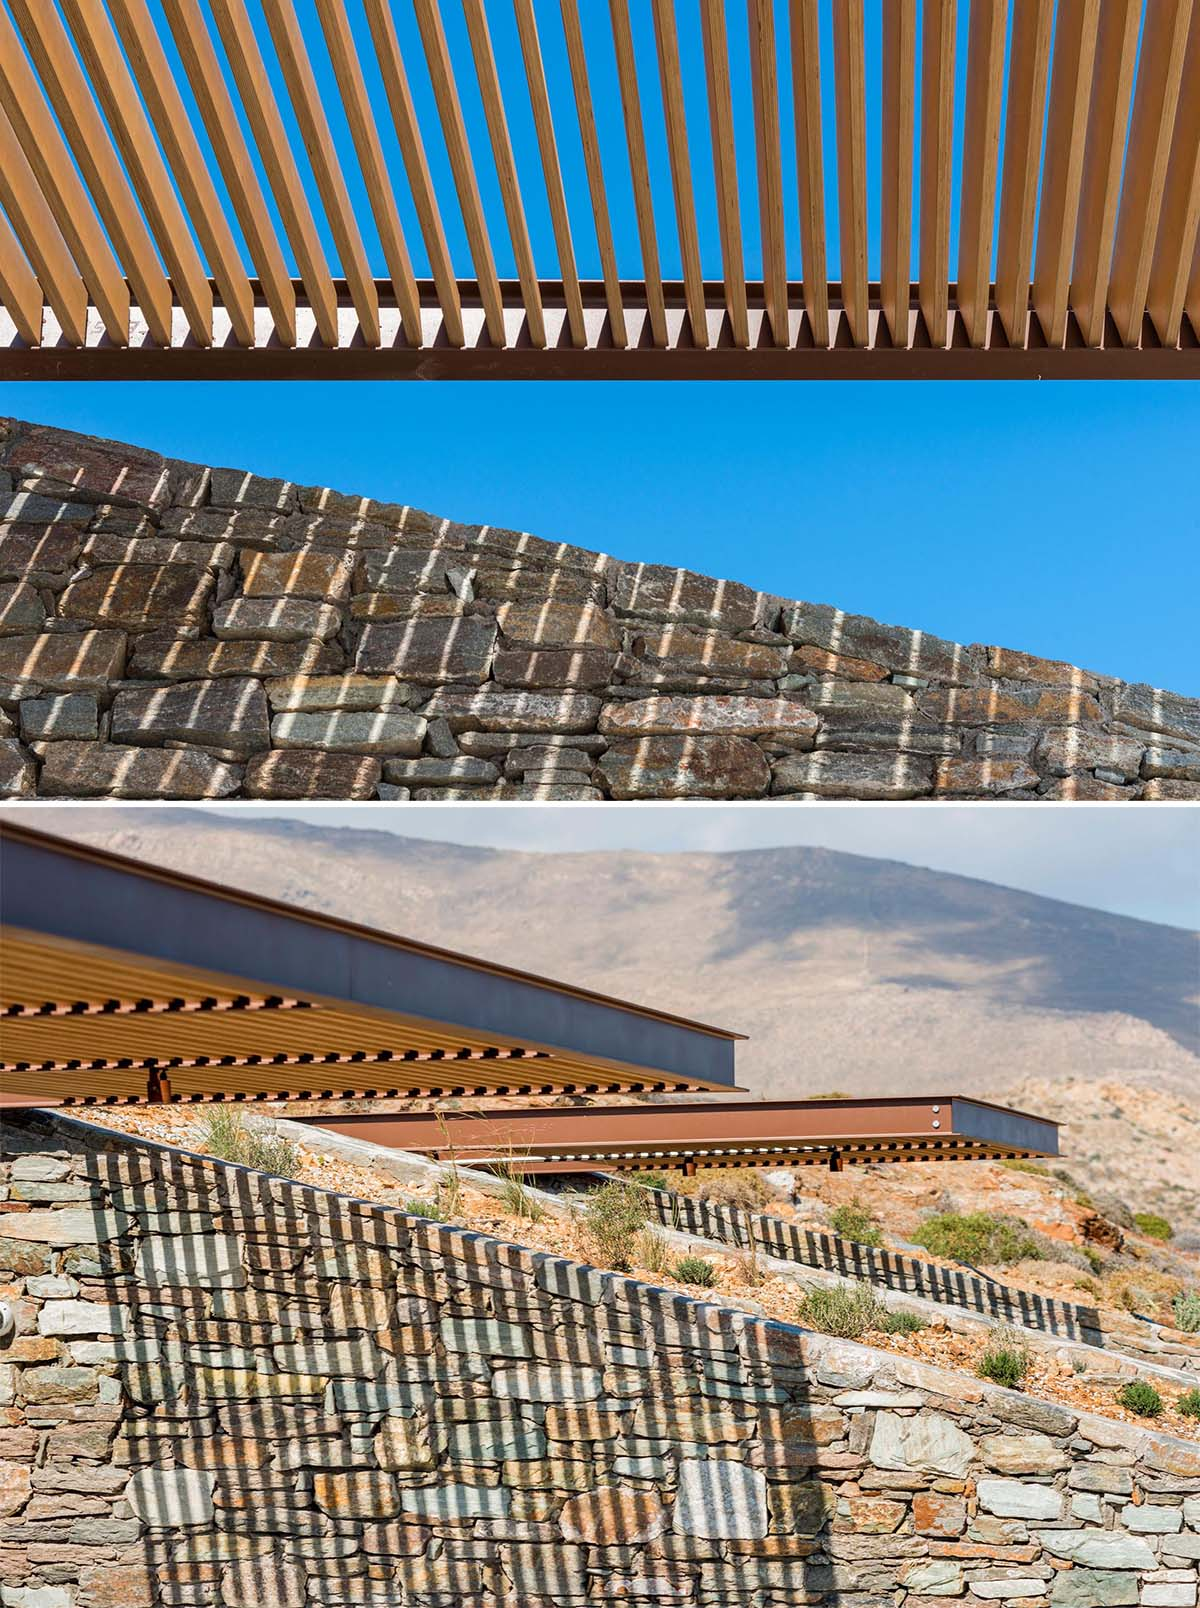 Screens made from wood slats with metal supports provide varying levels shade for both outdoor and indoor spaces.